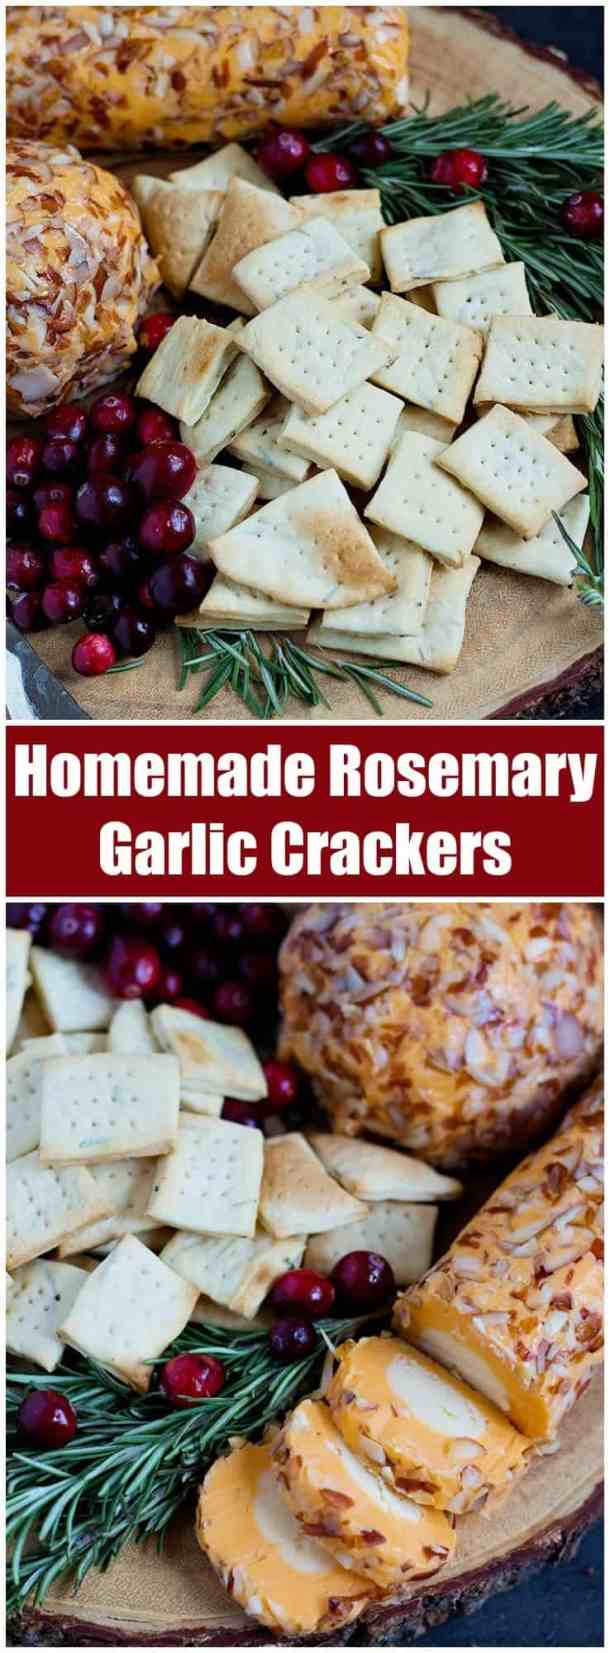 Garlic Crackers | Rosemary Garlic Crackers Recipe | Garlic Crackers Recipe | #Snacks #Rosemary #CheeseandCrackers